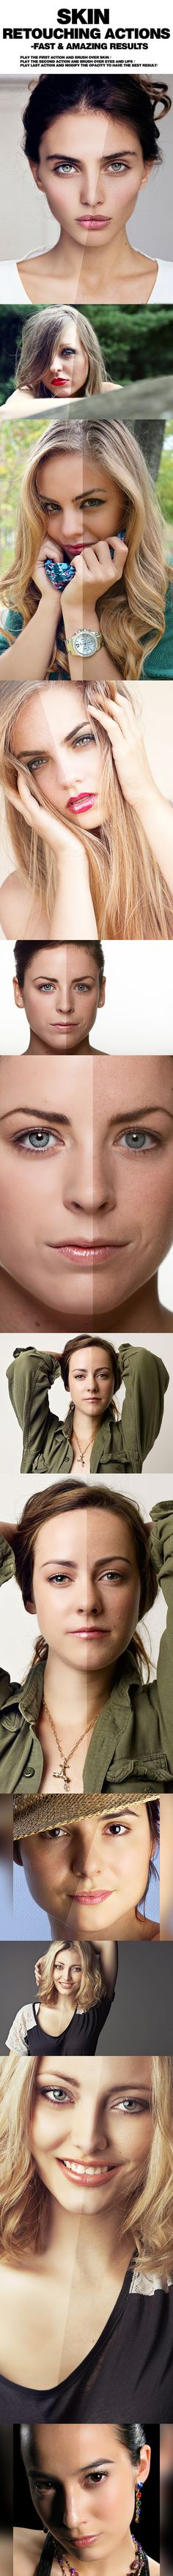 PRO Skin Retouching Actions  Photoshop • Download ➝ https://graphicriver.net/item/pro-skin-retouching-actions/12613318?ref=pxcr